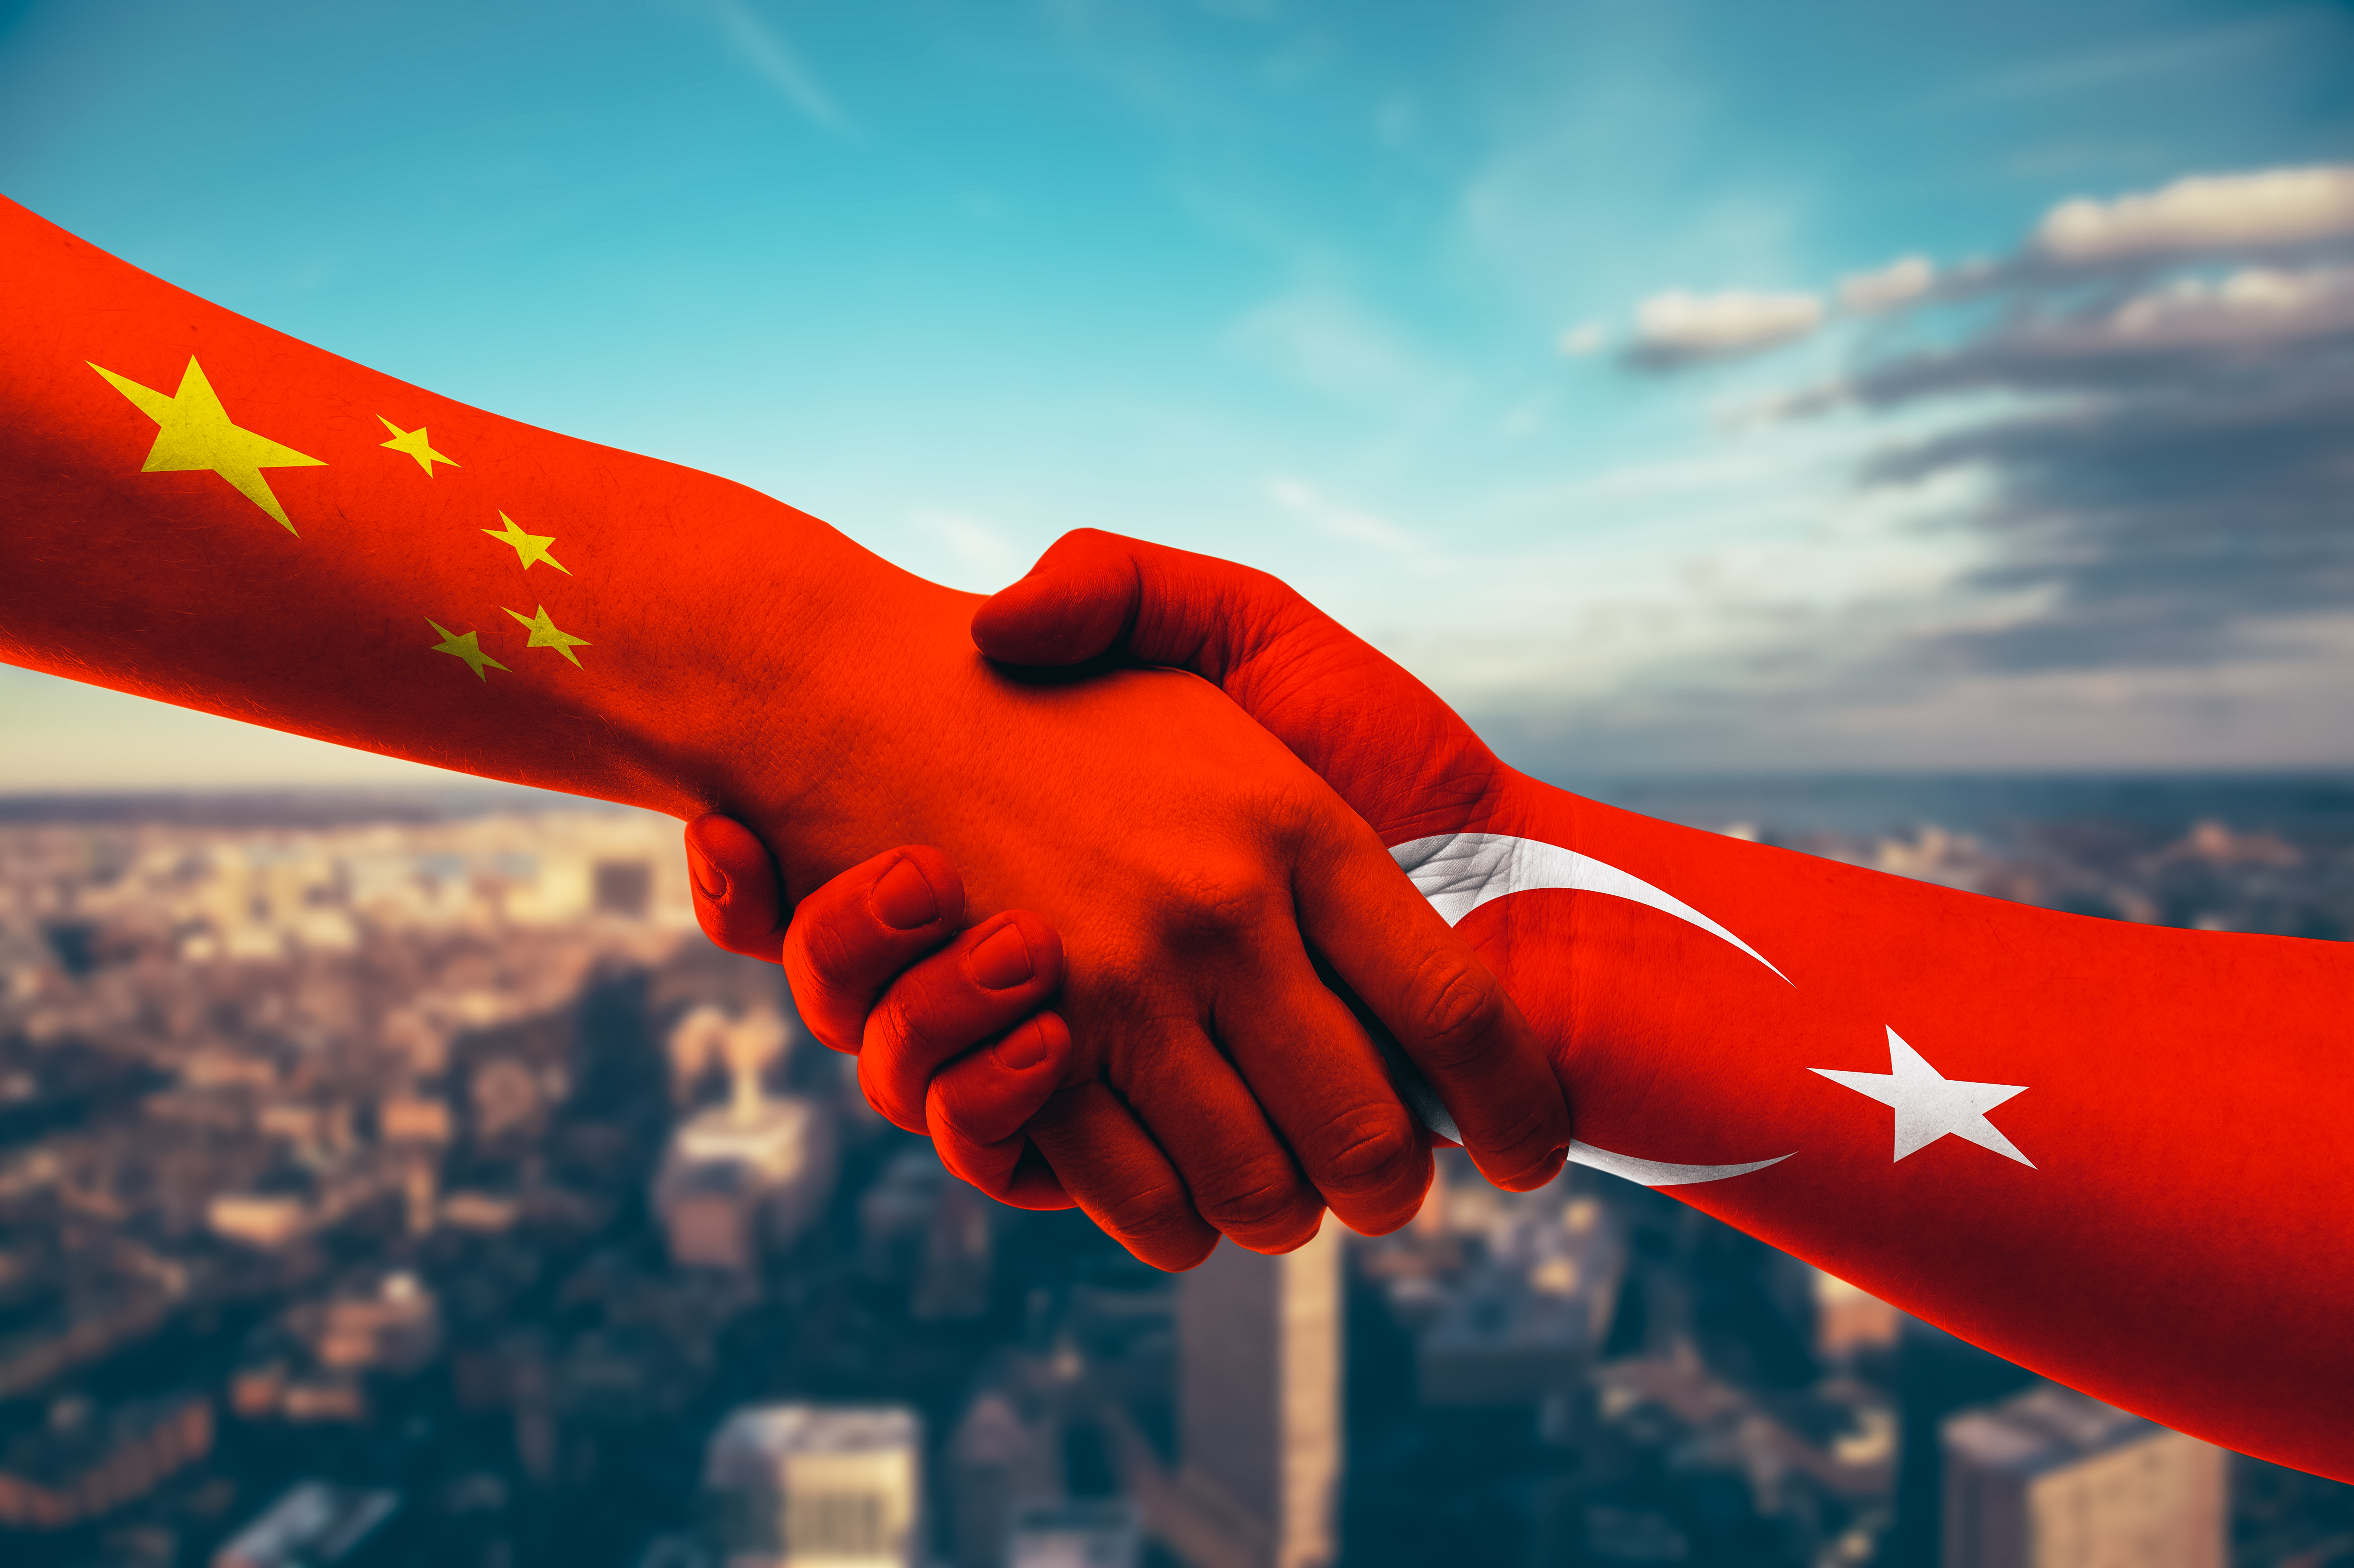 Turkey-China Relations: 5 Geopolitical Effects You Need to Know